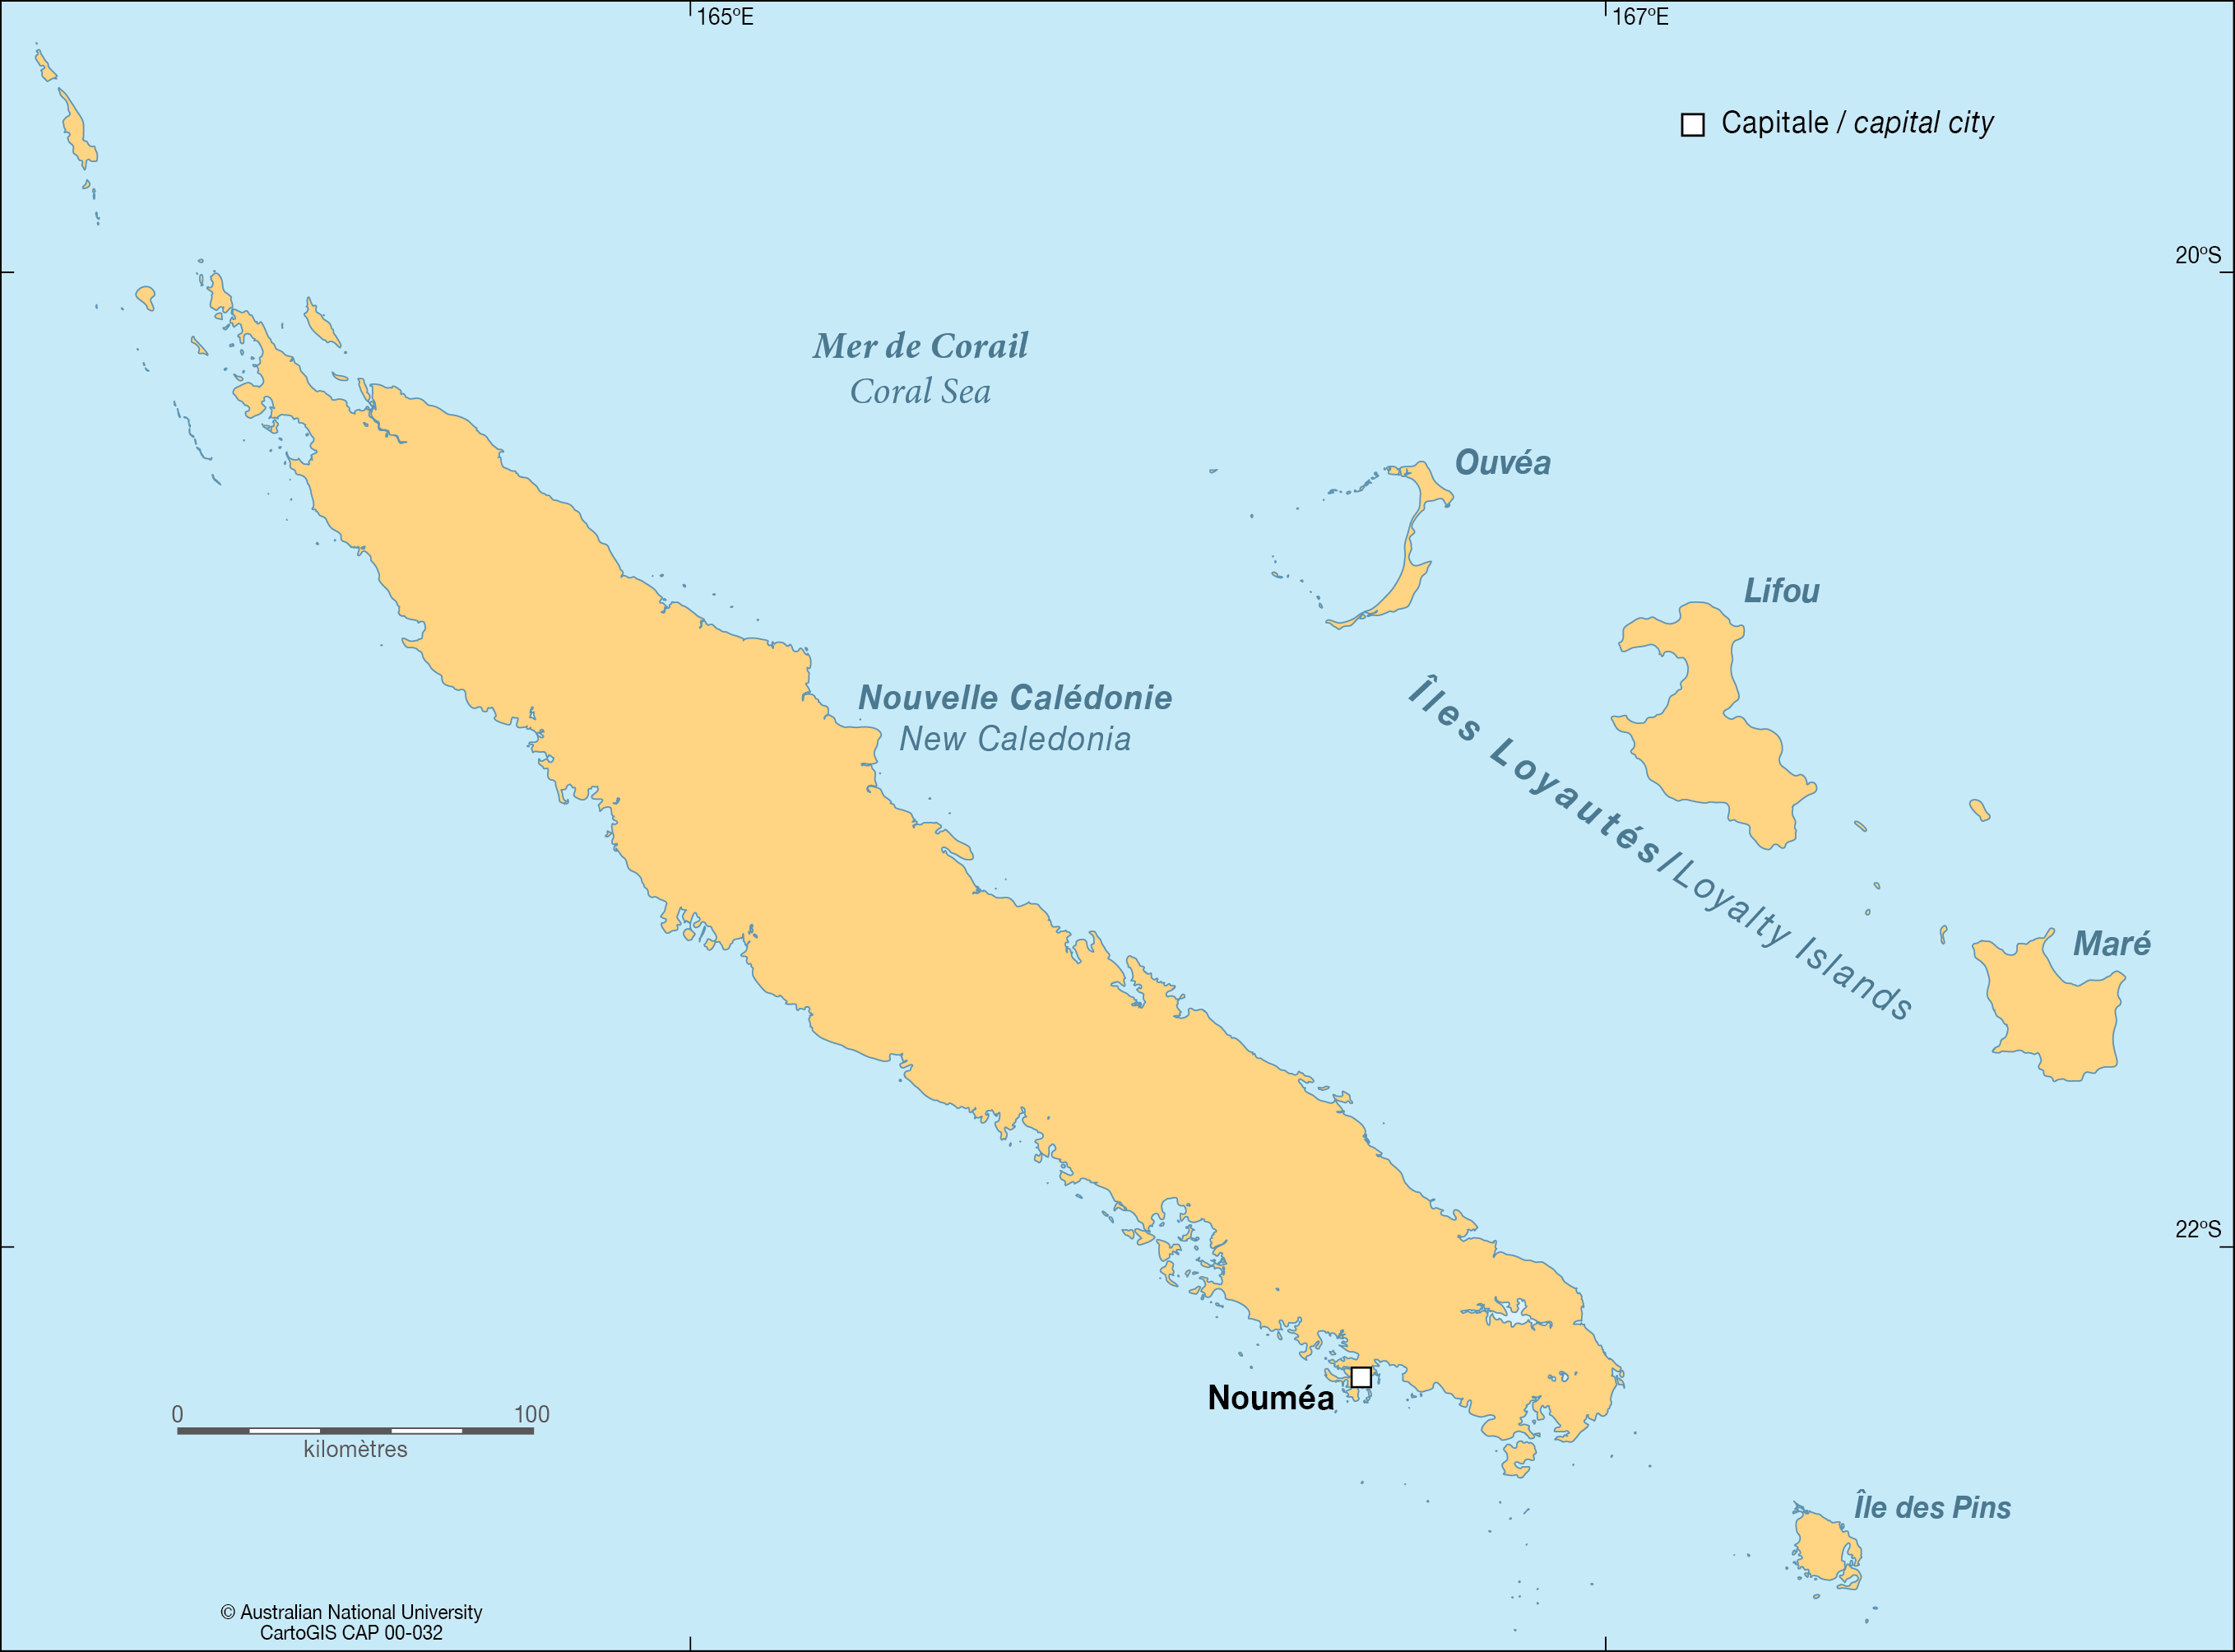 New Caledonia - CartoGIS Services Maps Online - ANU on